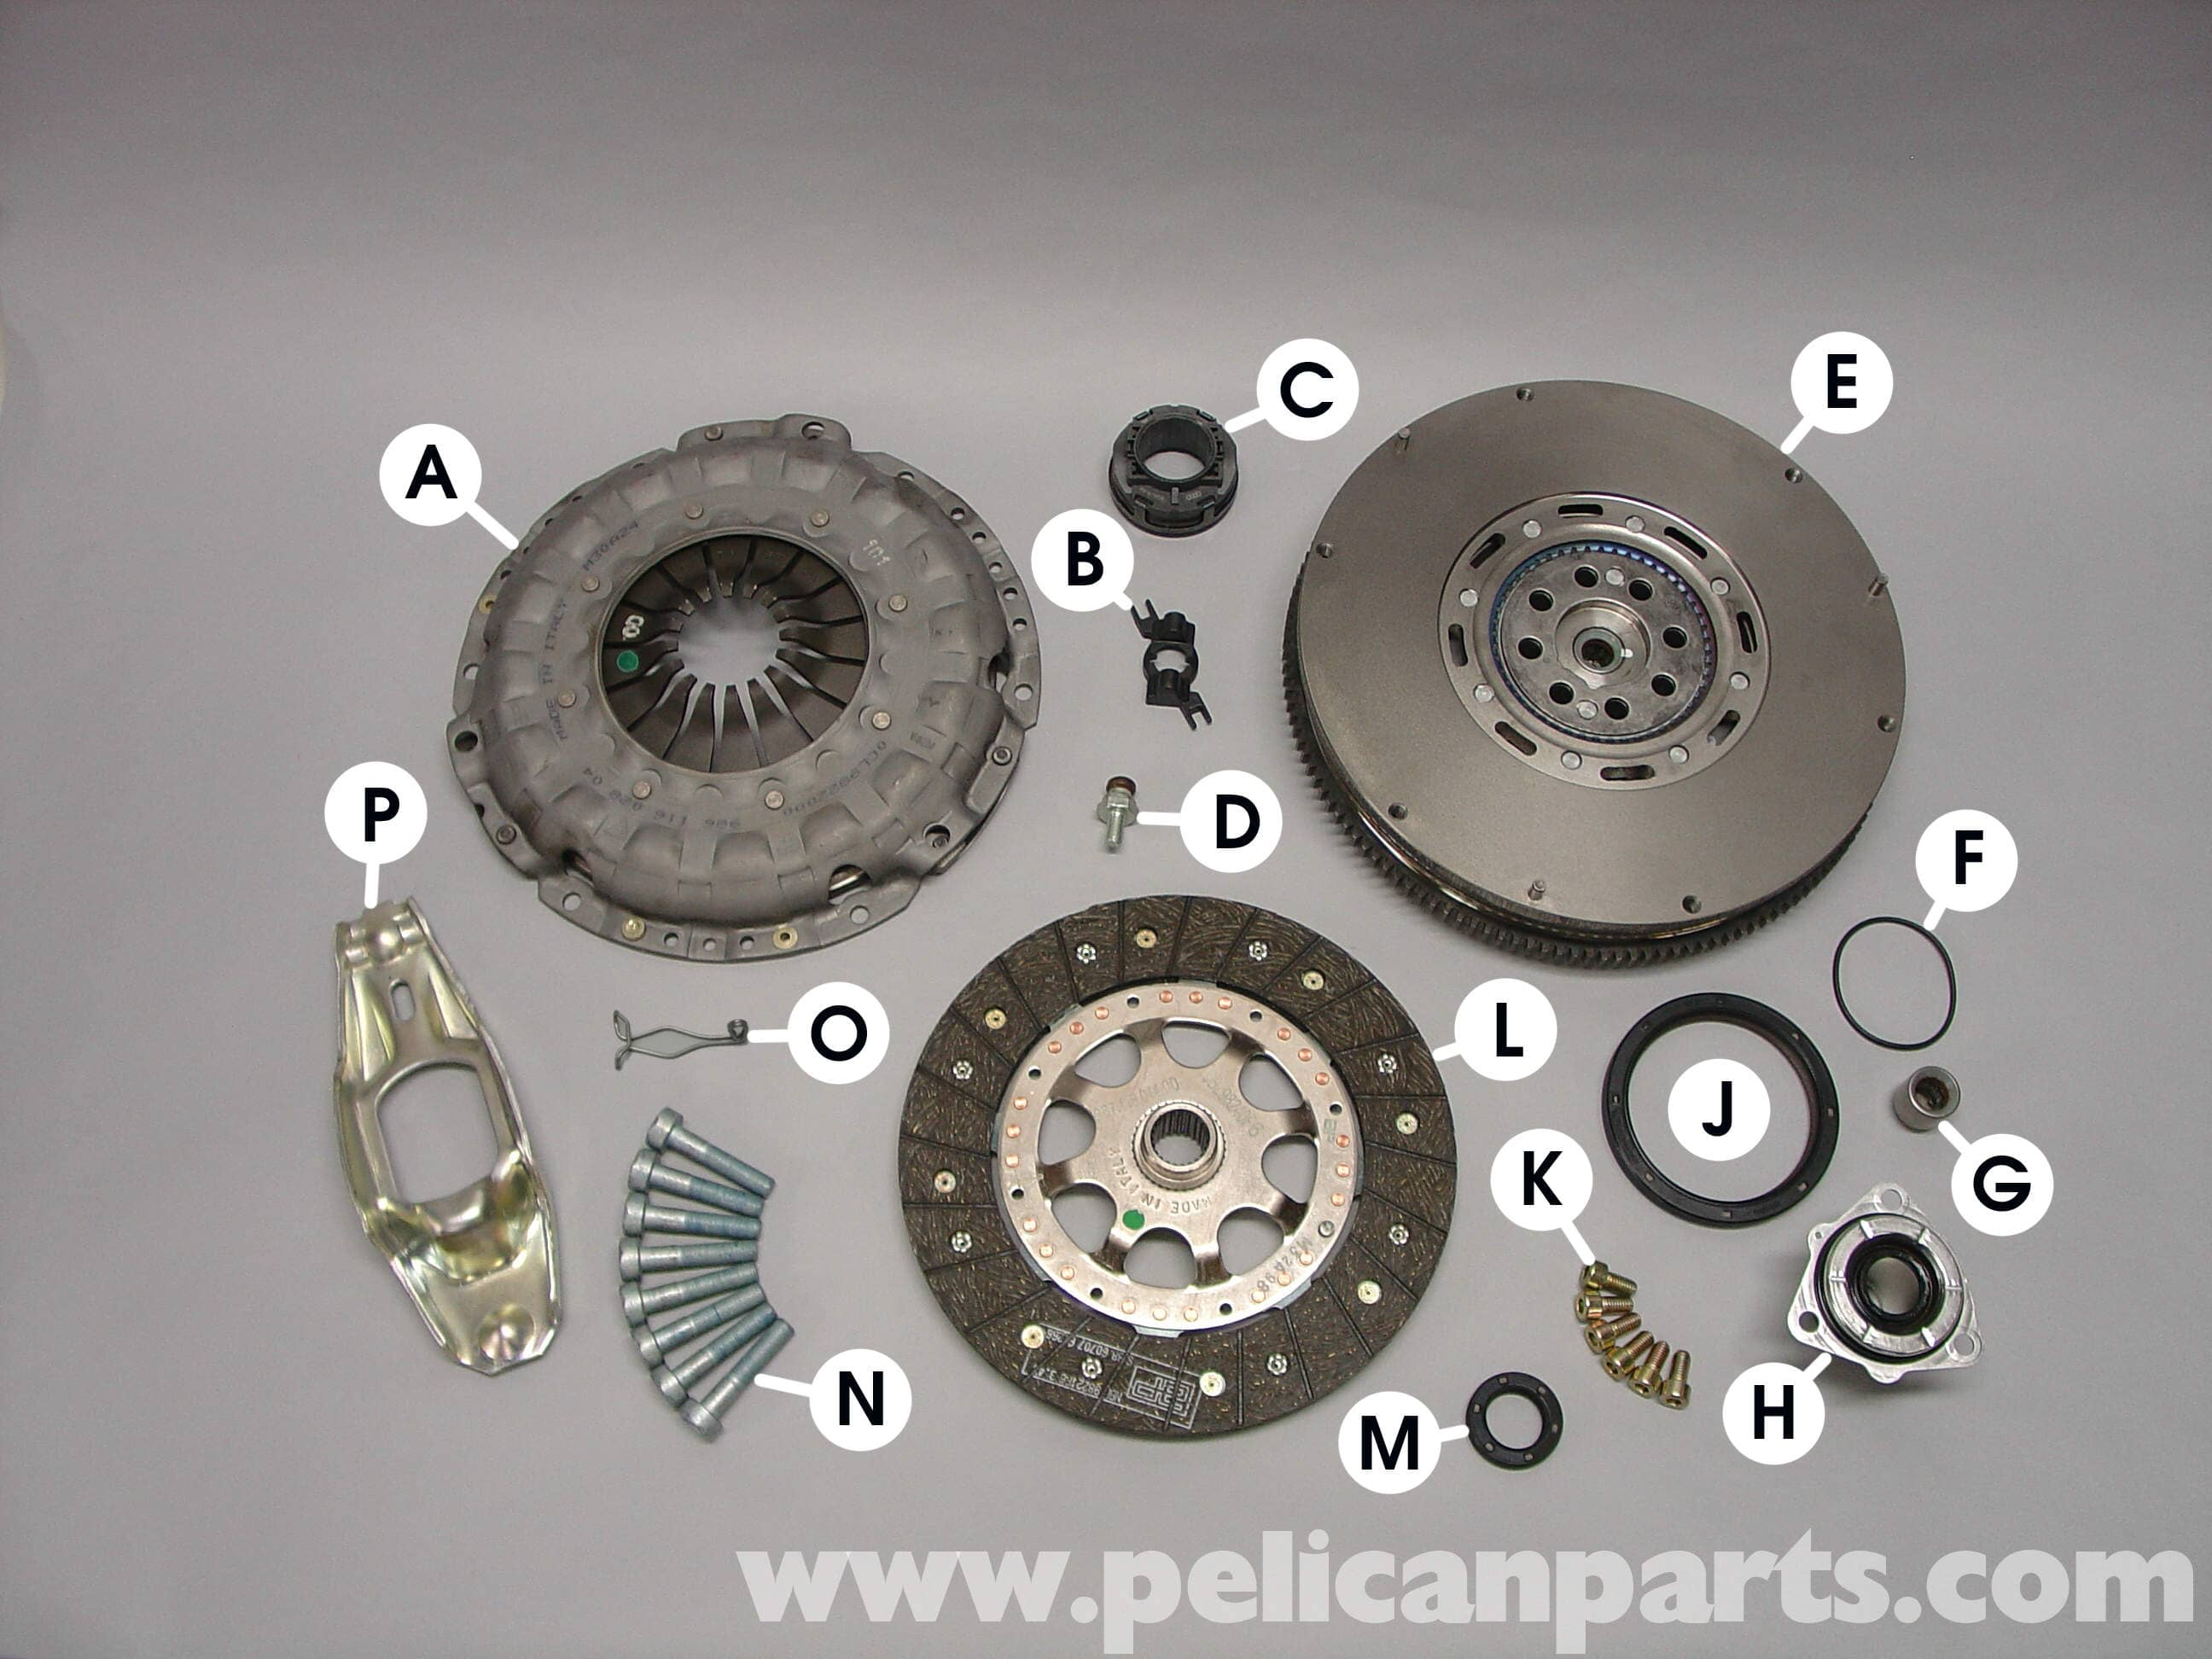 Porsche Boxster Clutch Replacement 986 987 1997 08 Pelican Diagrams Diagnosis Cluthces Hydraulic Adjusting Large Image Extra